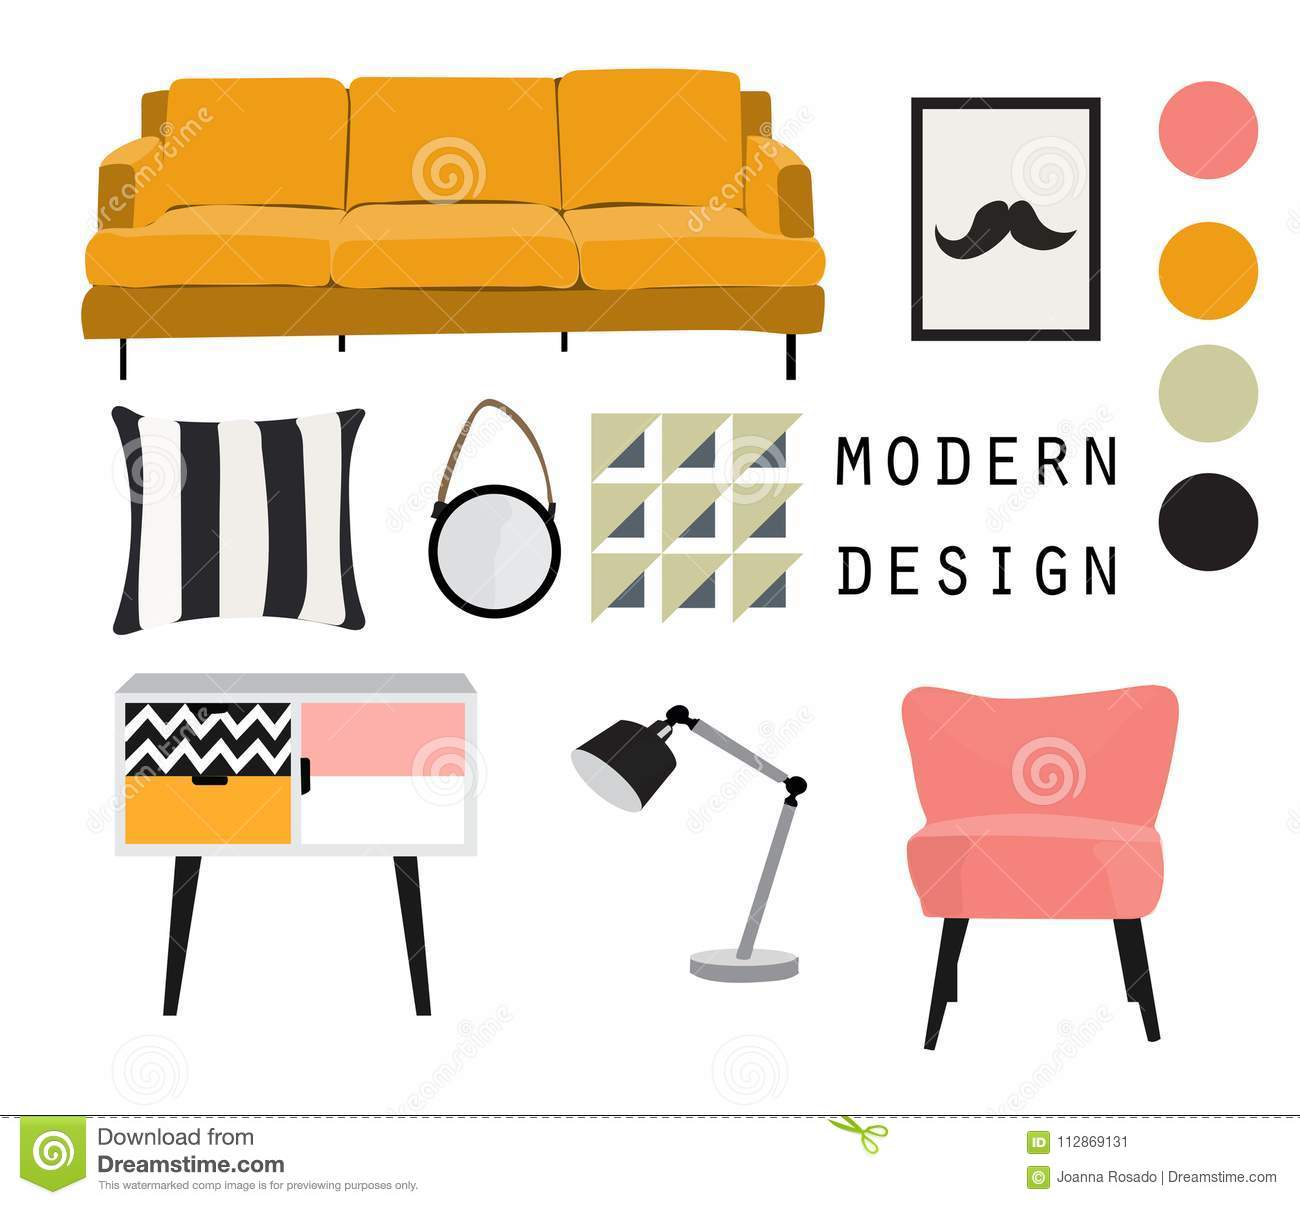 Image of: Vector Interior Design Mood Board Illustration Living Room Furniture Stock Vector Illustration Of Chair Decor 112869131